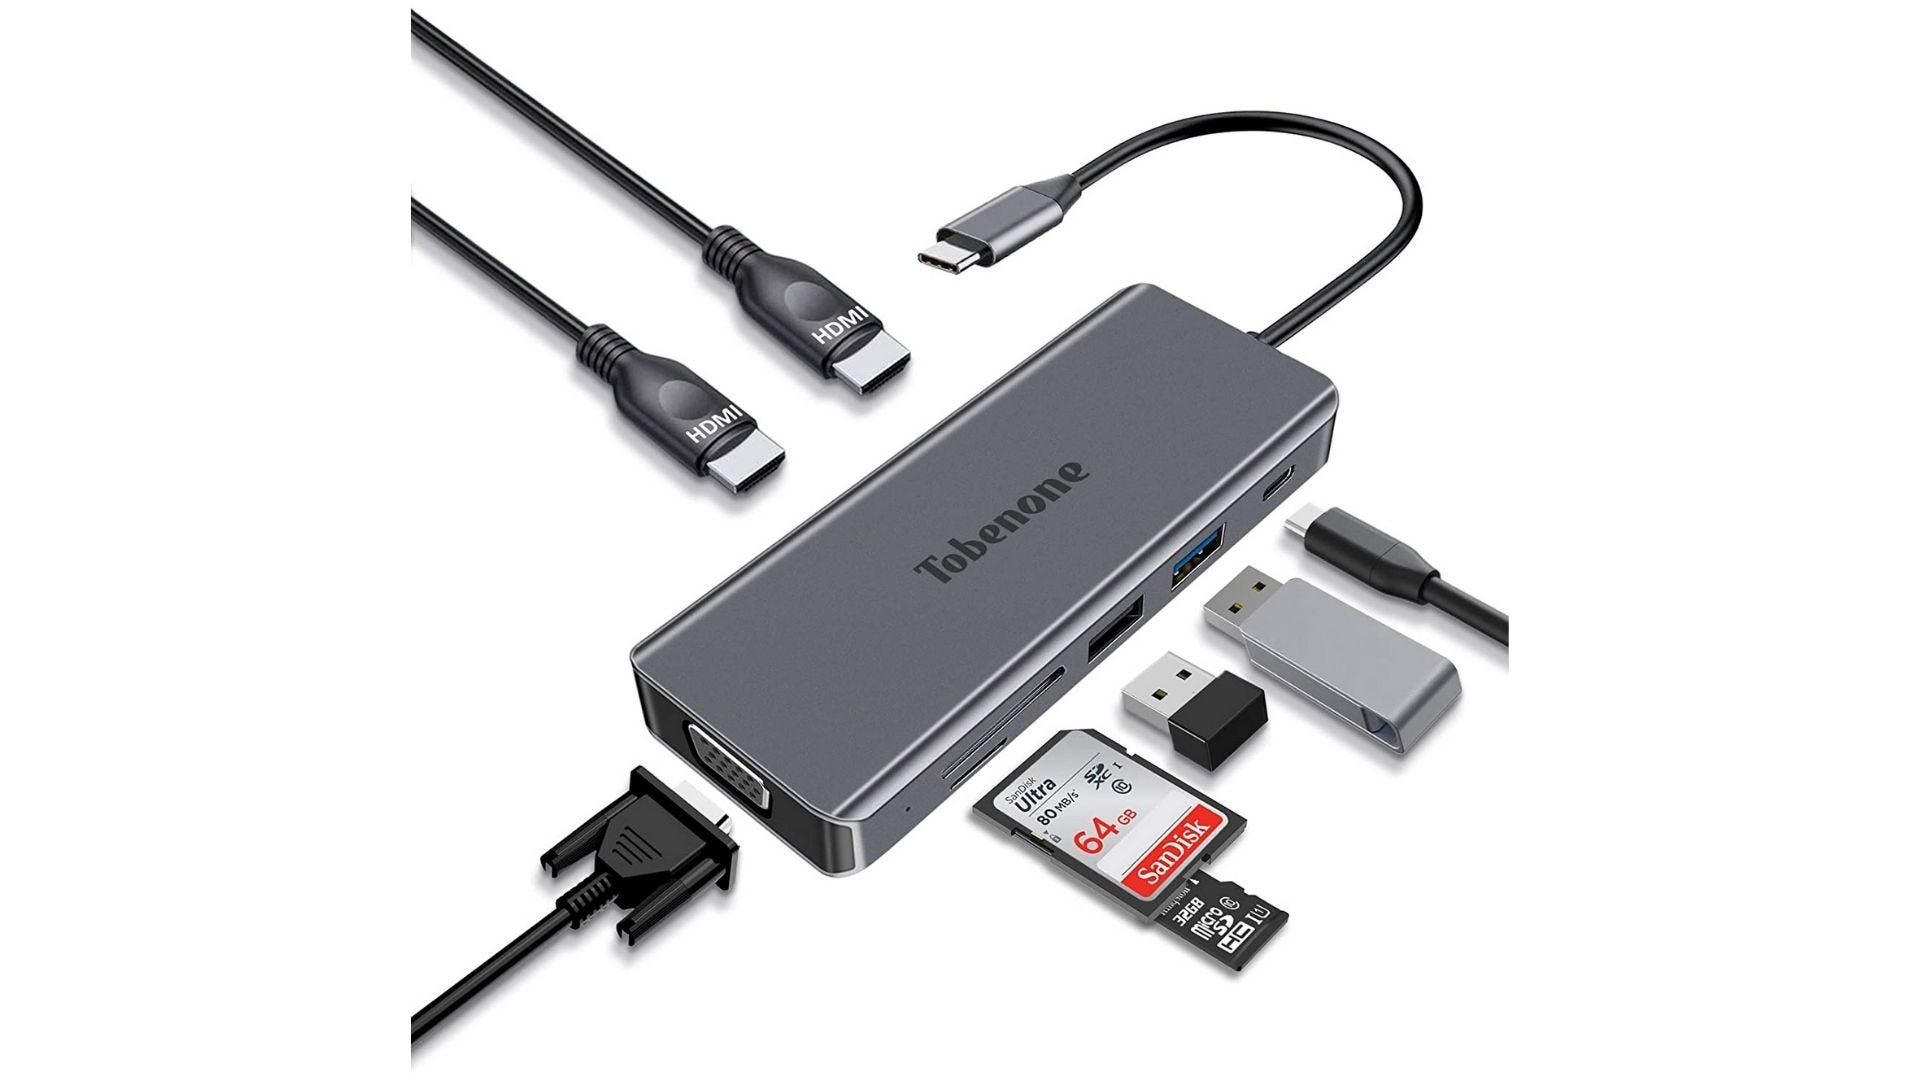 Tobenone USB-C Dock for laptops